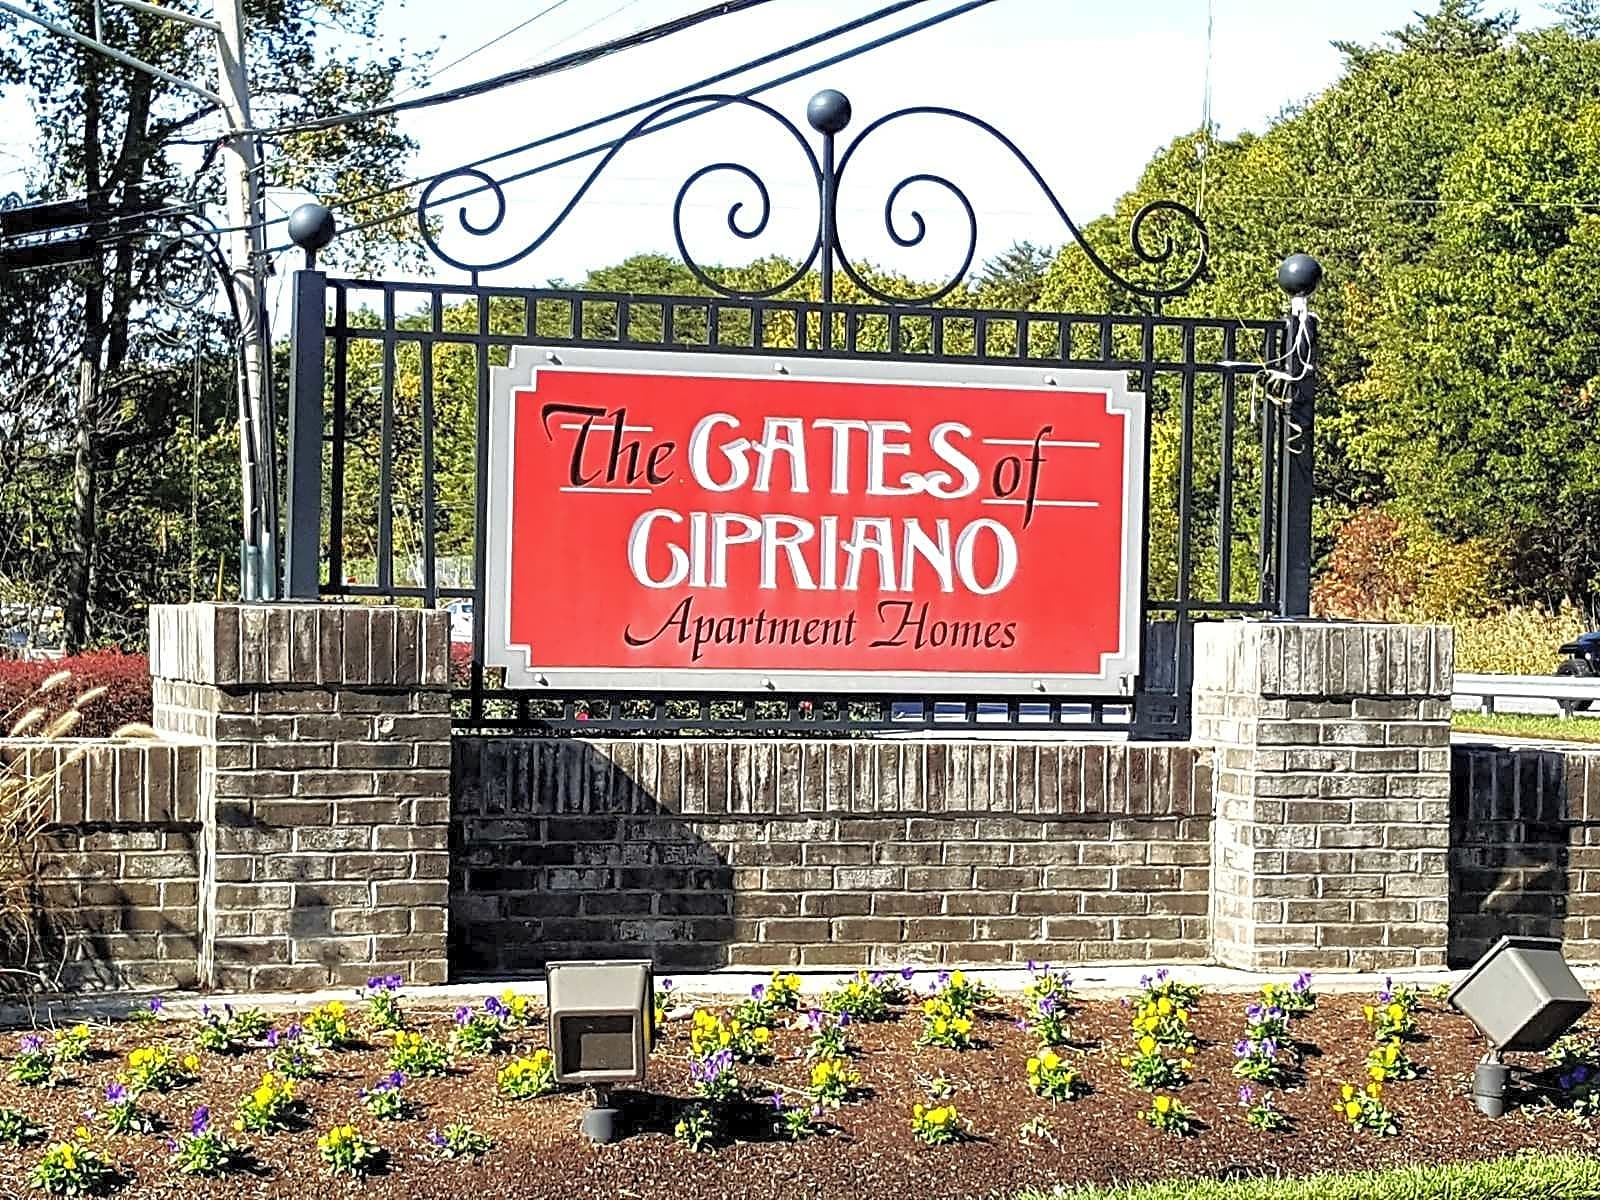 The Gates of Cipriano